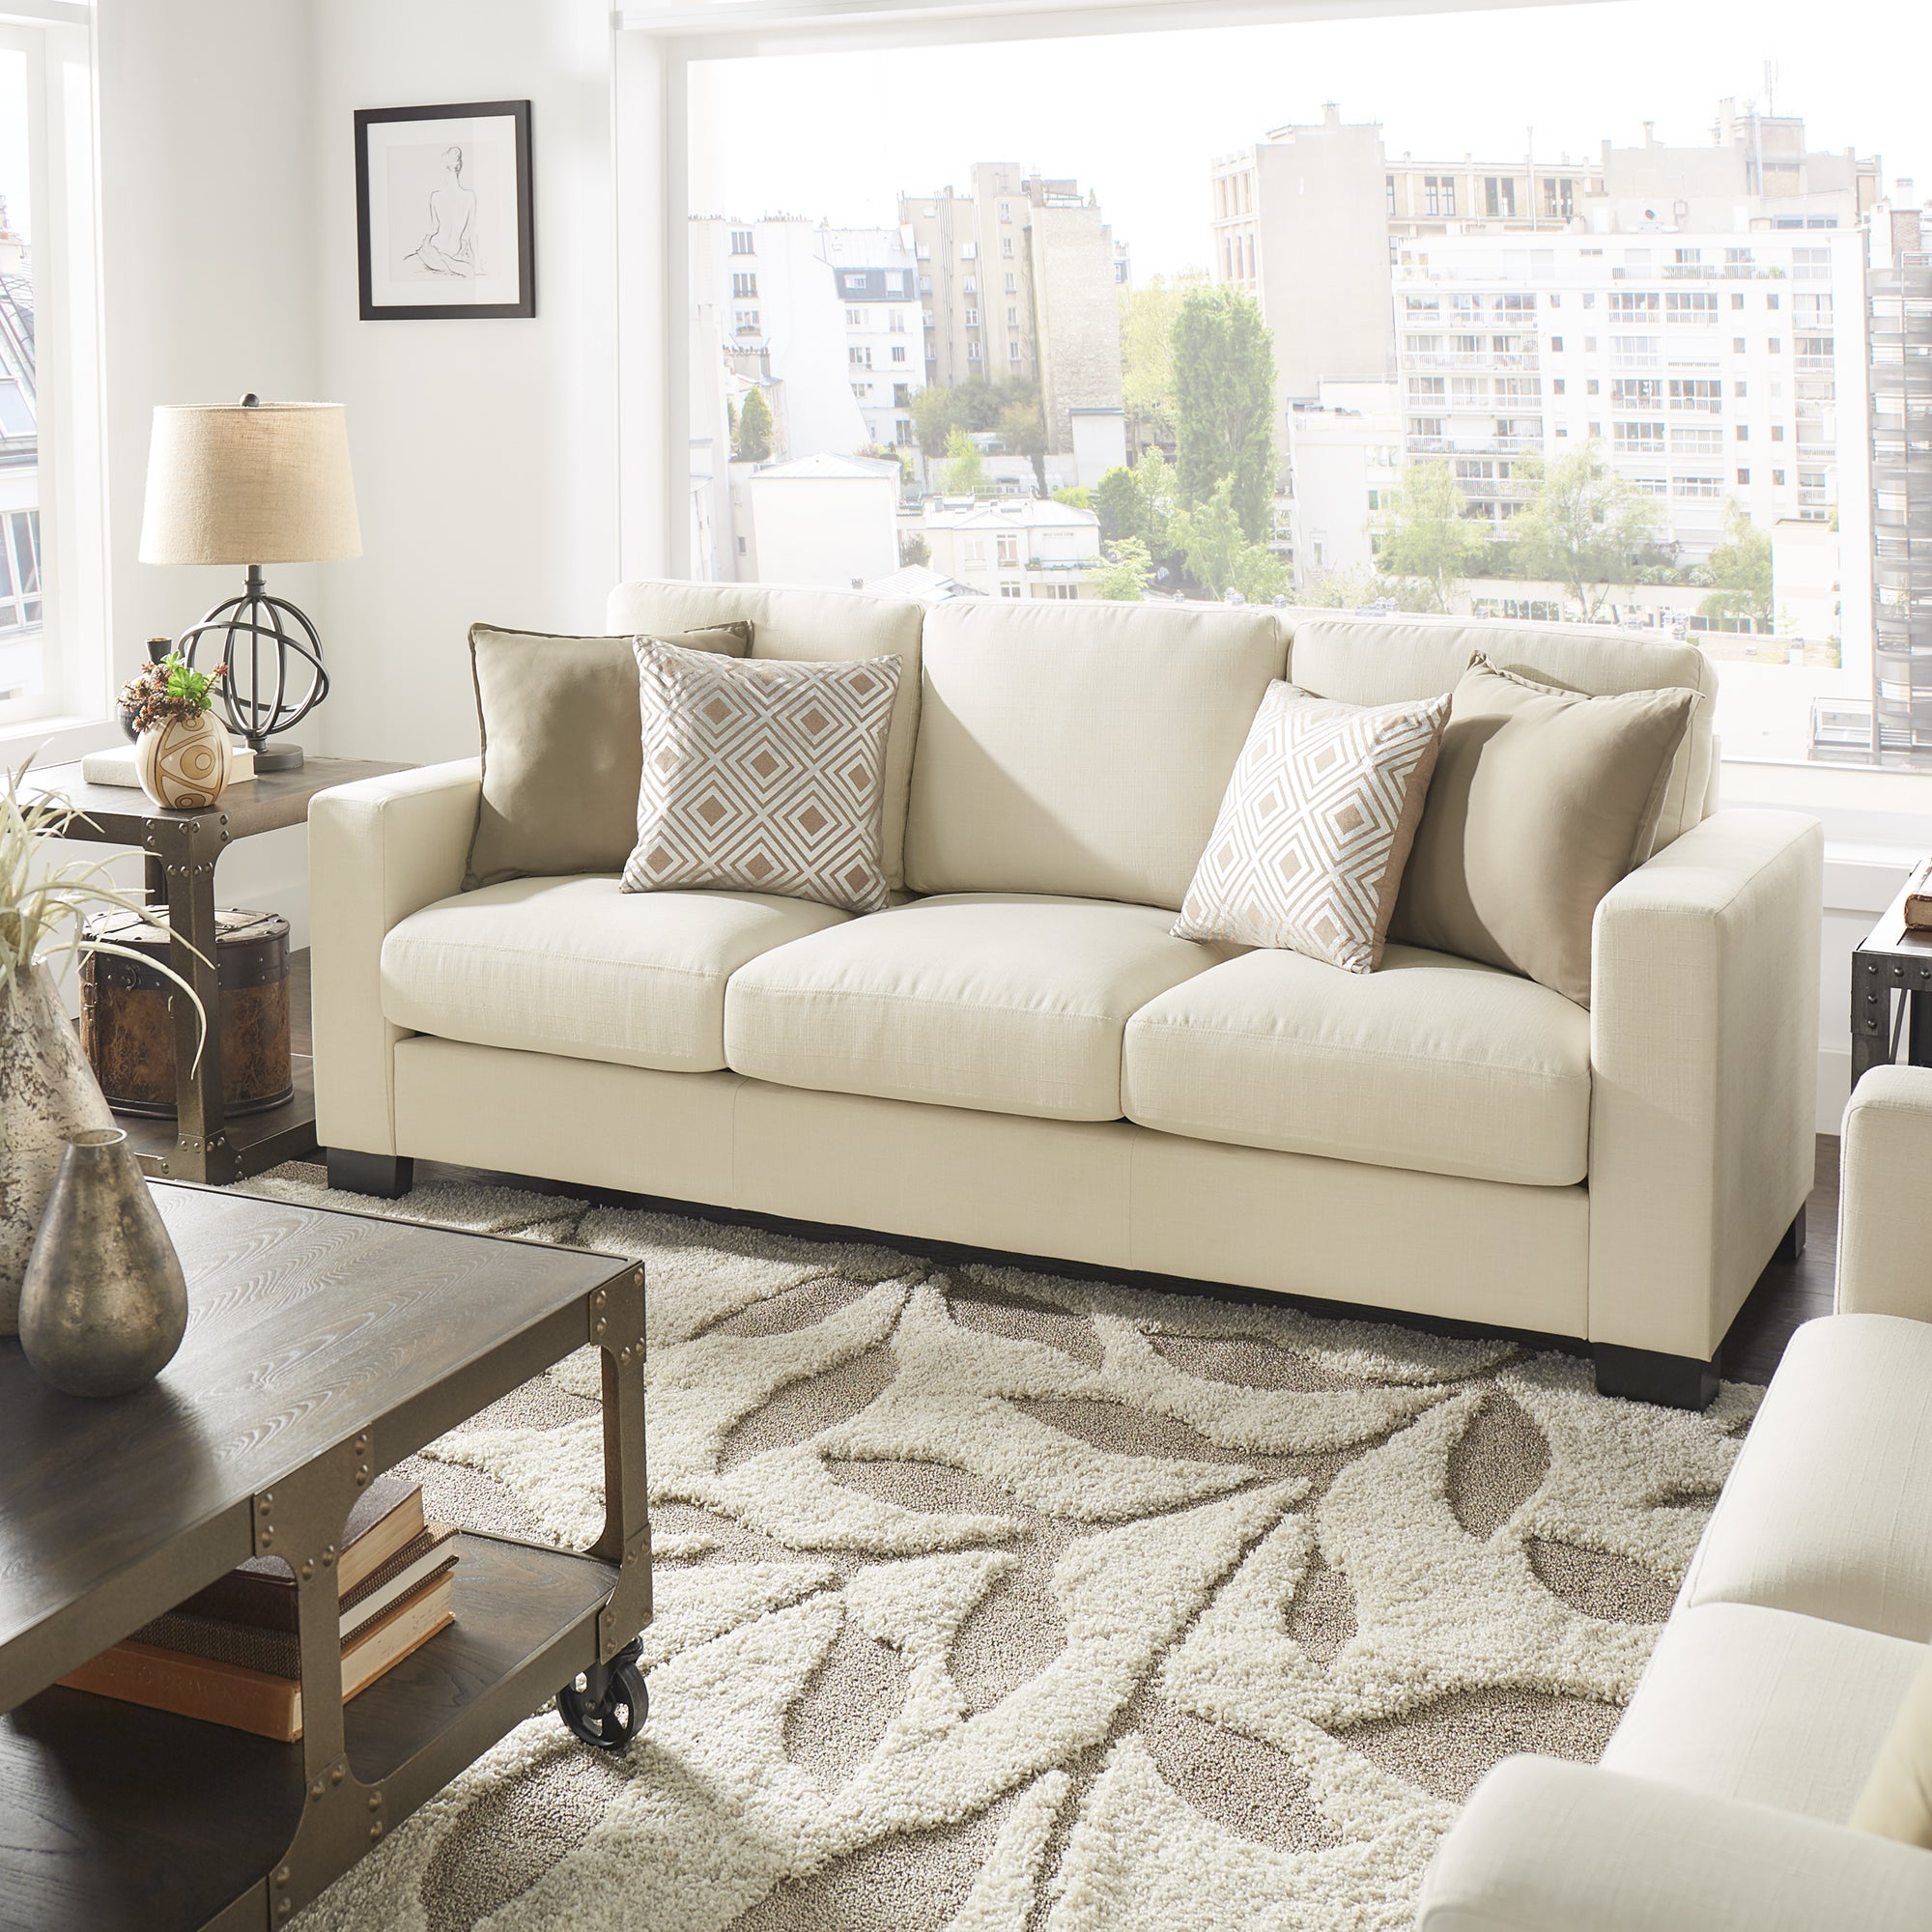 Shop torrington white linen fabric down filled track arm sofa by inspire q artisan on sale free shipping today overstock com 13786818